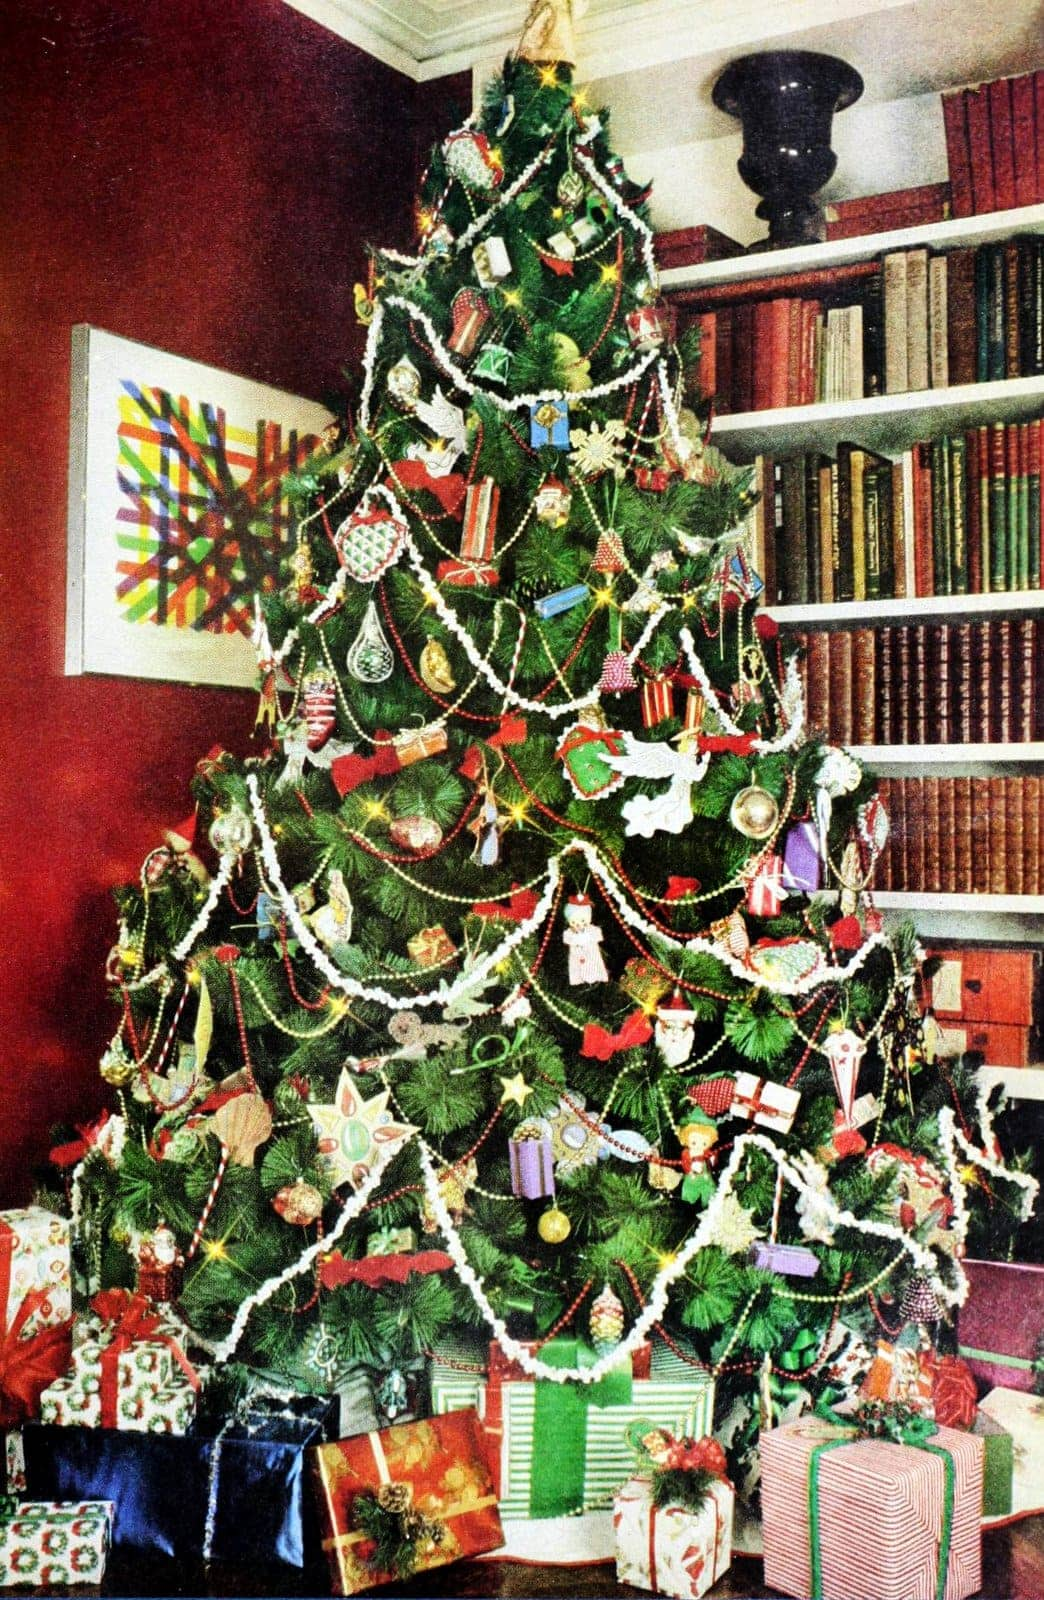 Decorating Christmas trees in the